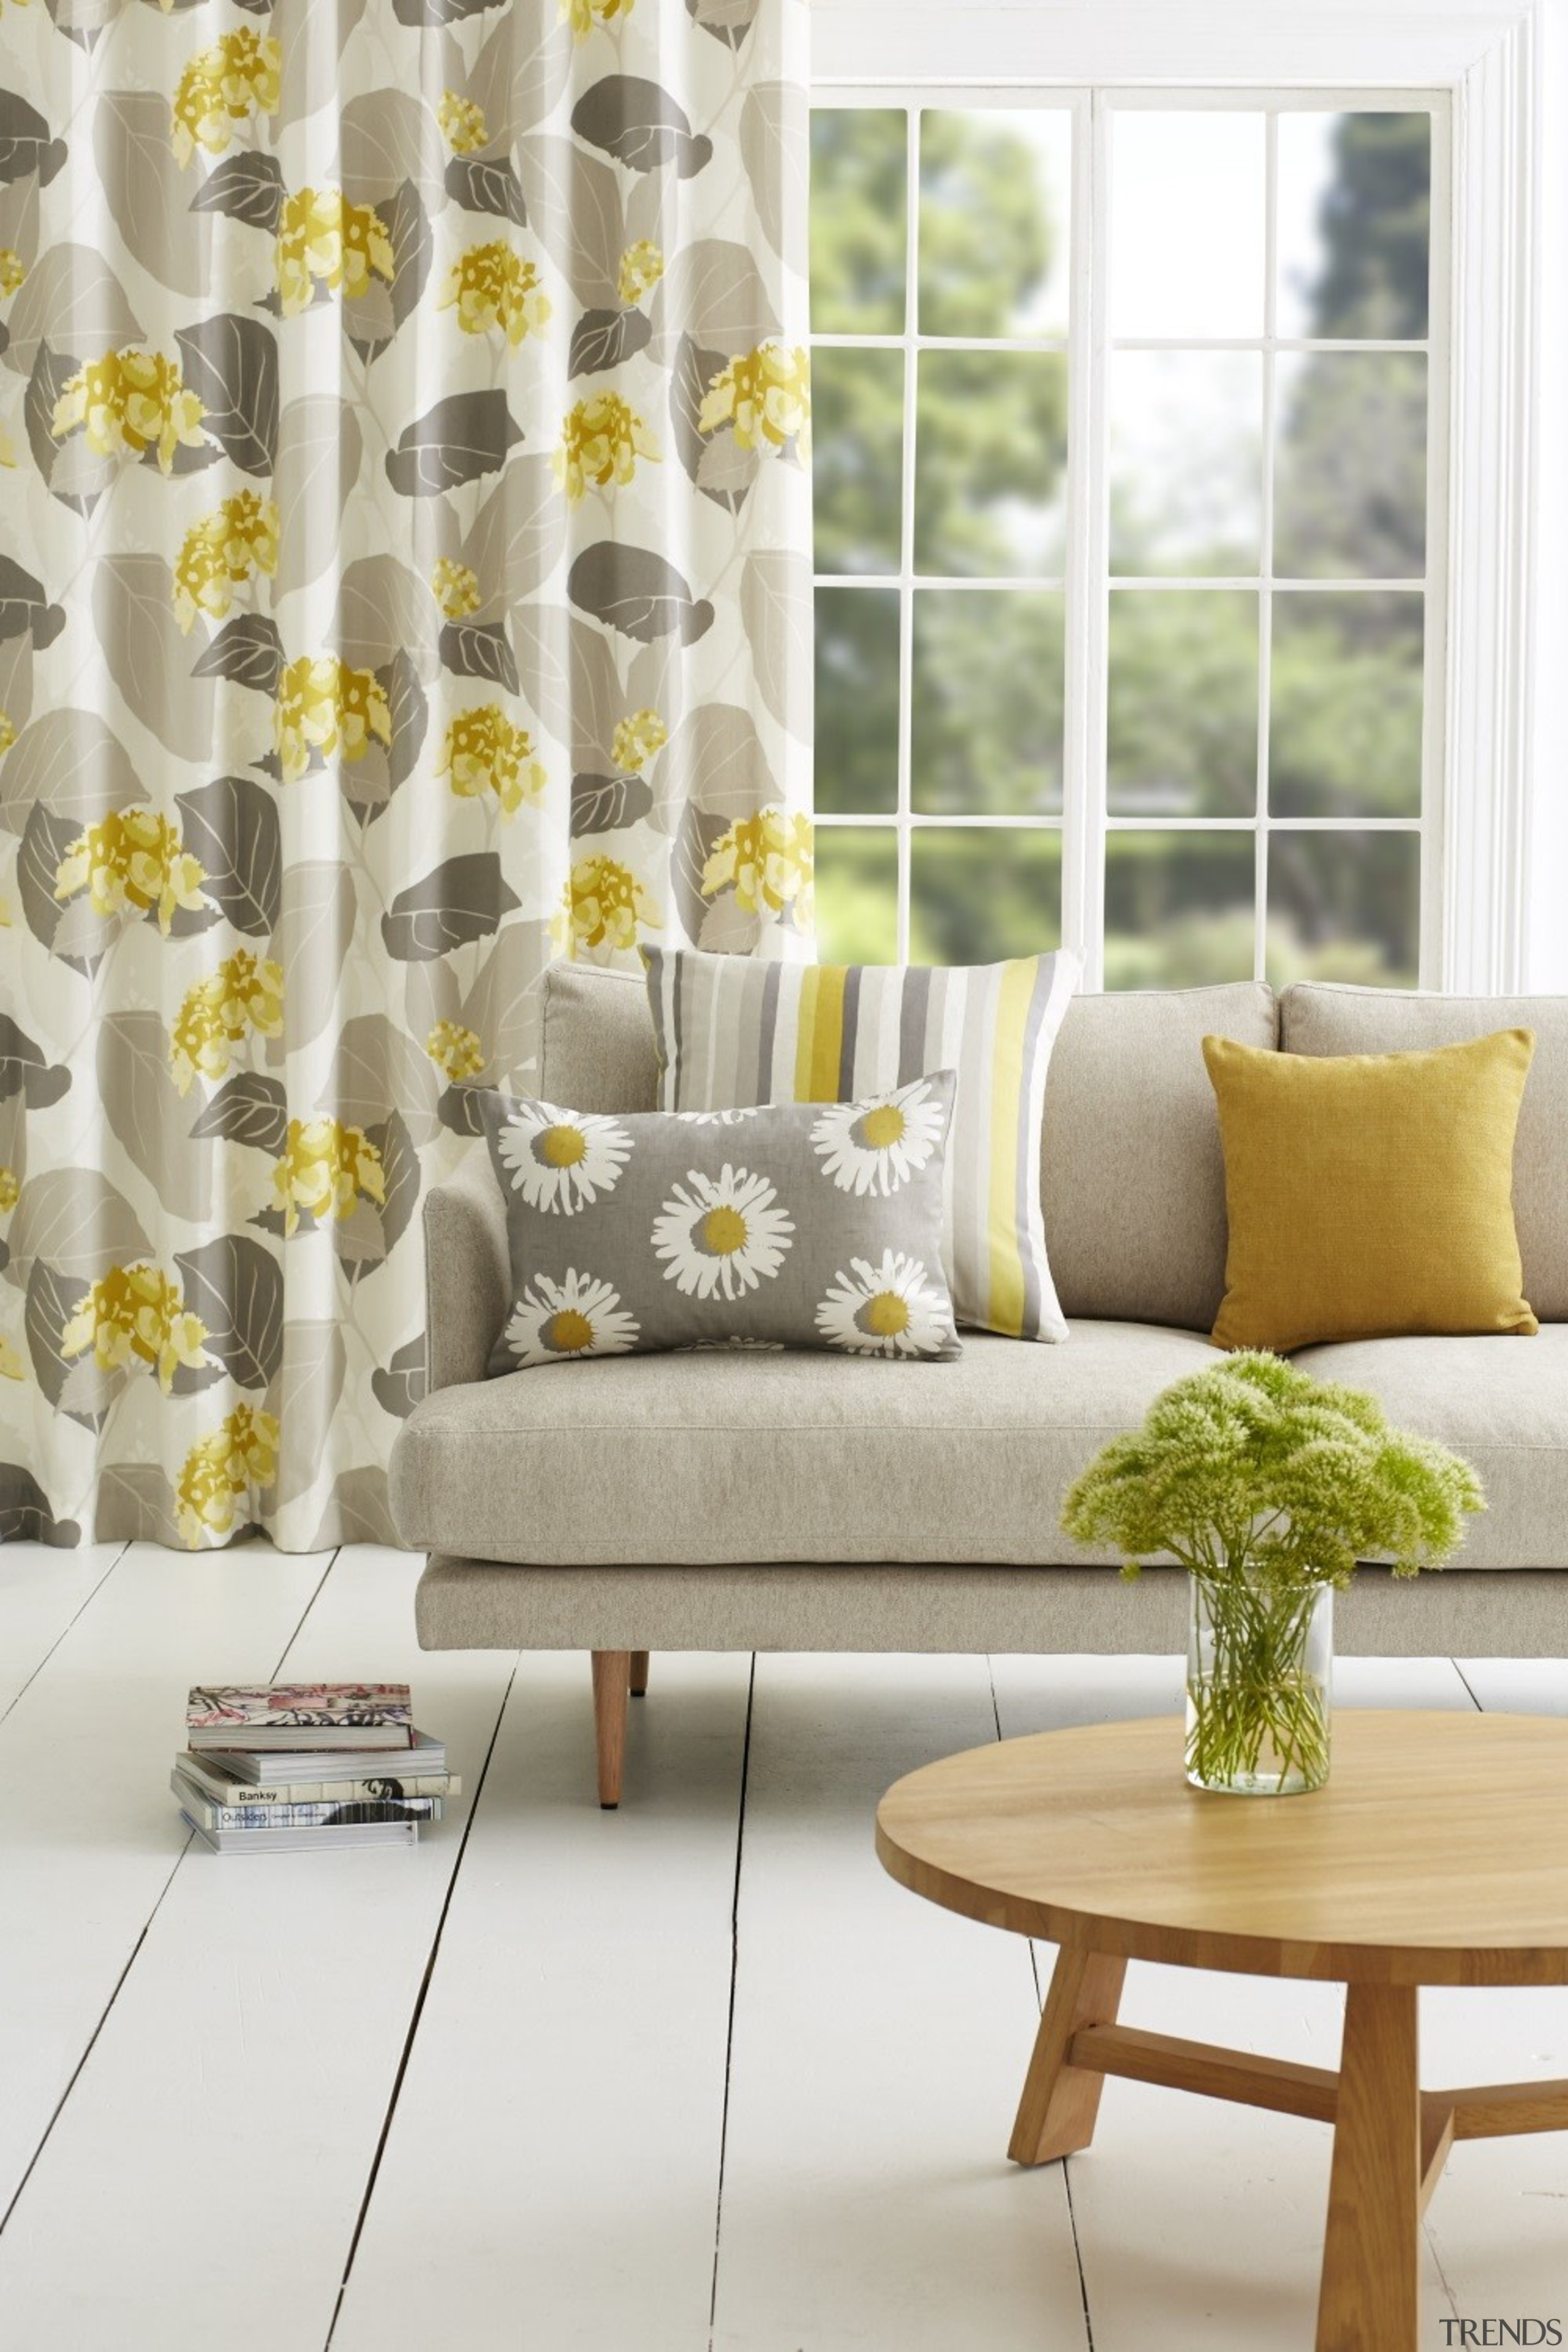 Harrisons Curtains - Harrisons Curtains - couch | couch, curtain, furniture, home, interior design, living room, table, textile, window, window covering, window treatment, yellow, white